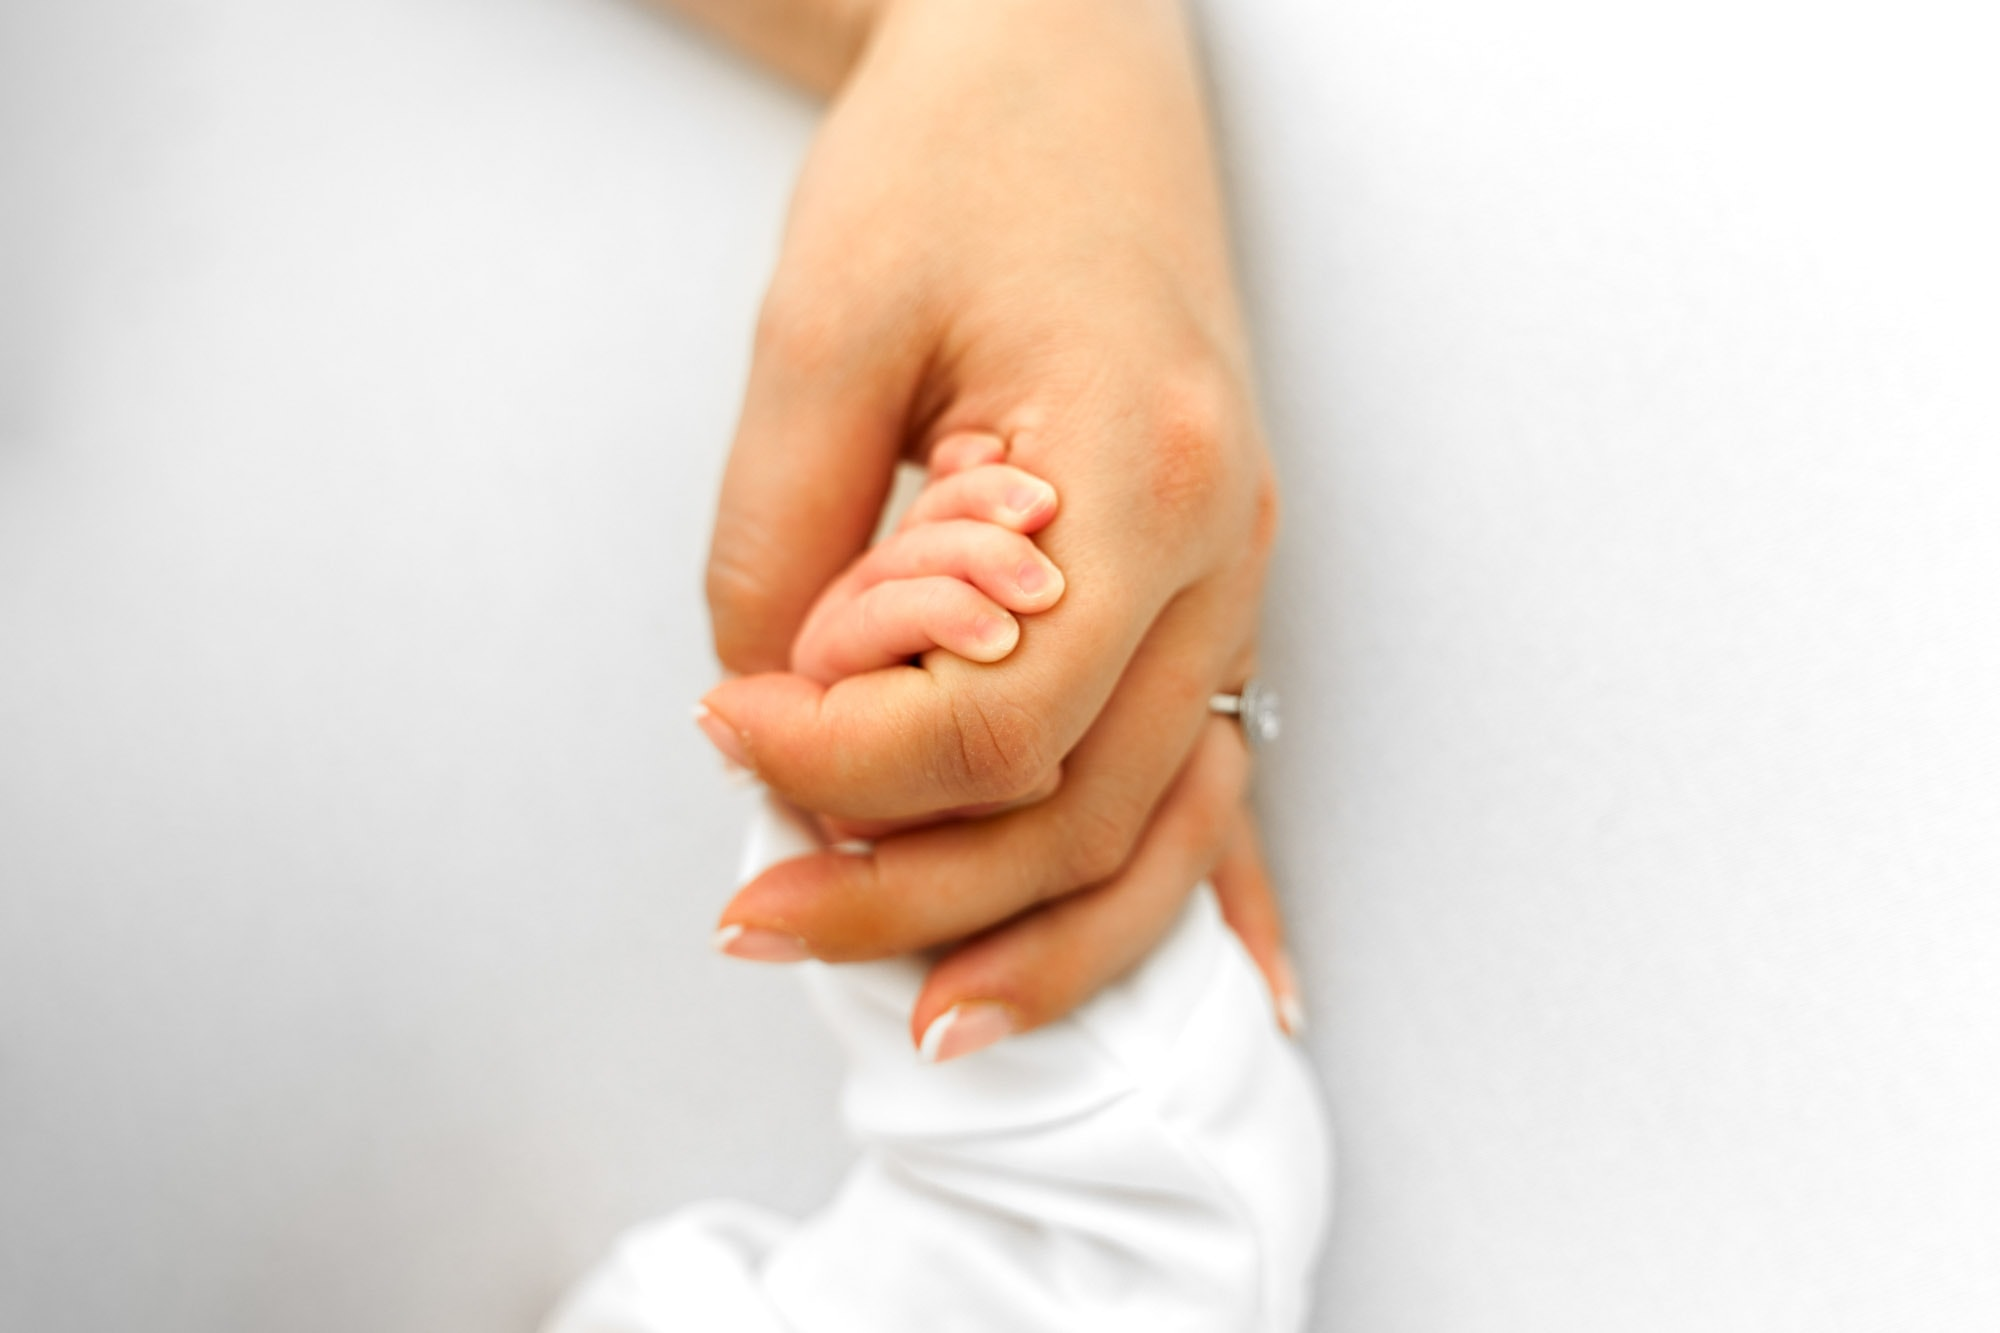 newborn photographer norwich captures close up of infants hand in mothers hand